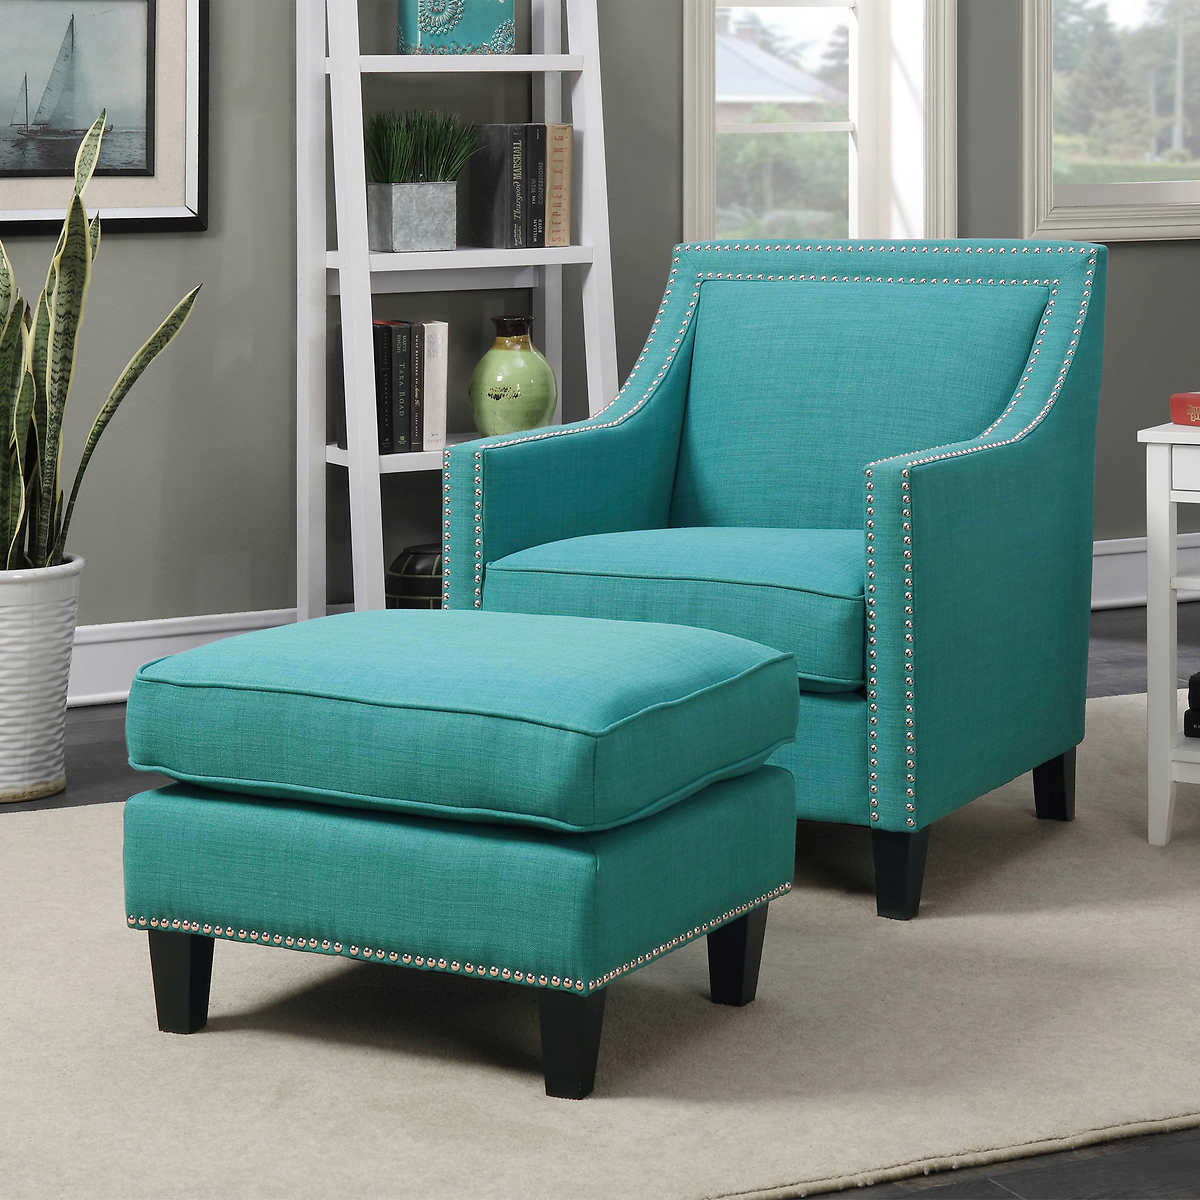 Accent Chairs With Ottomans Best Home Design 2018